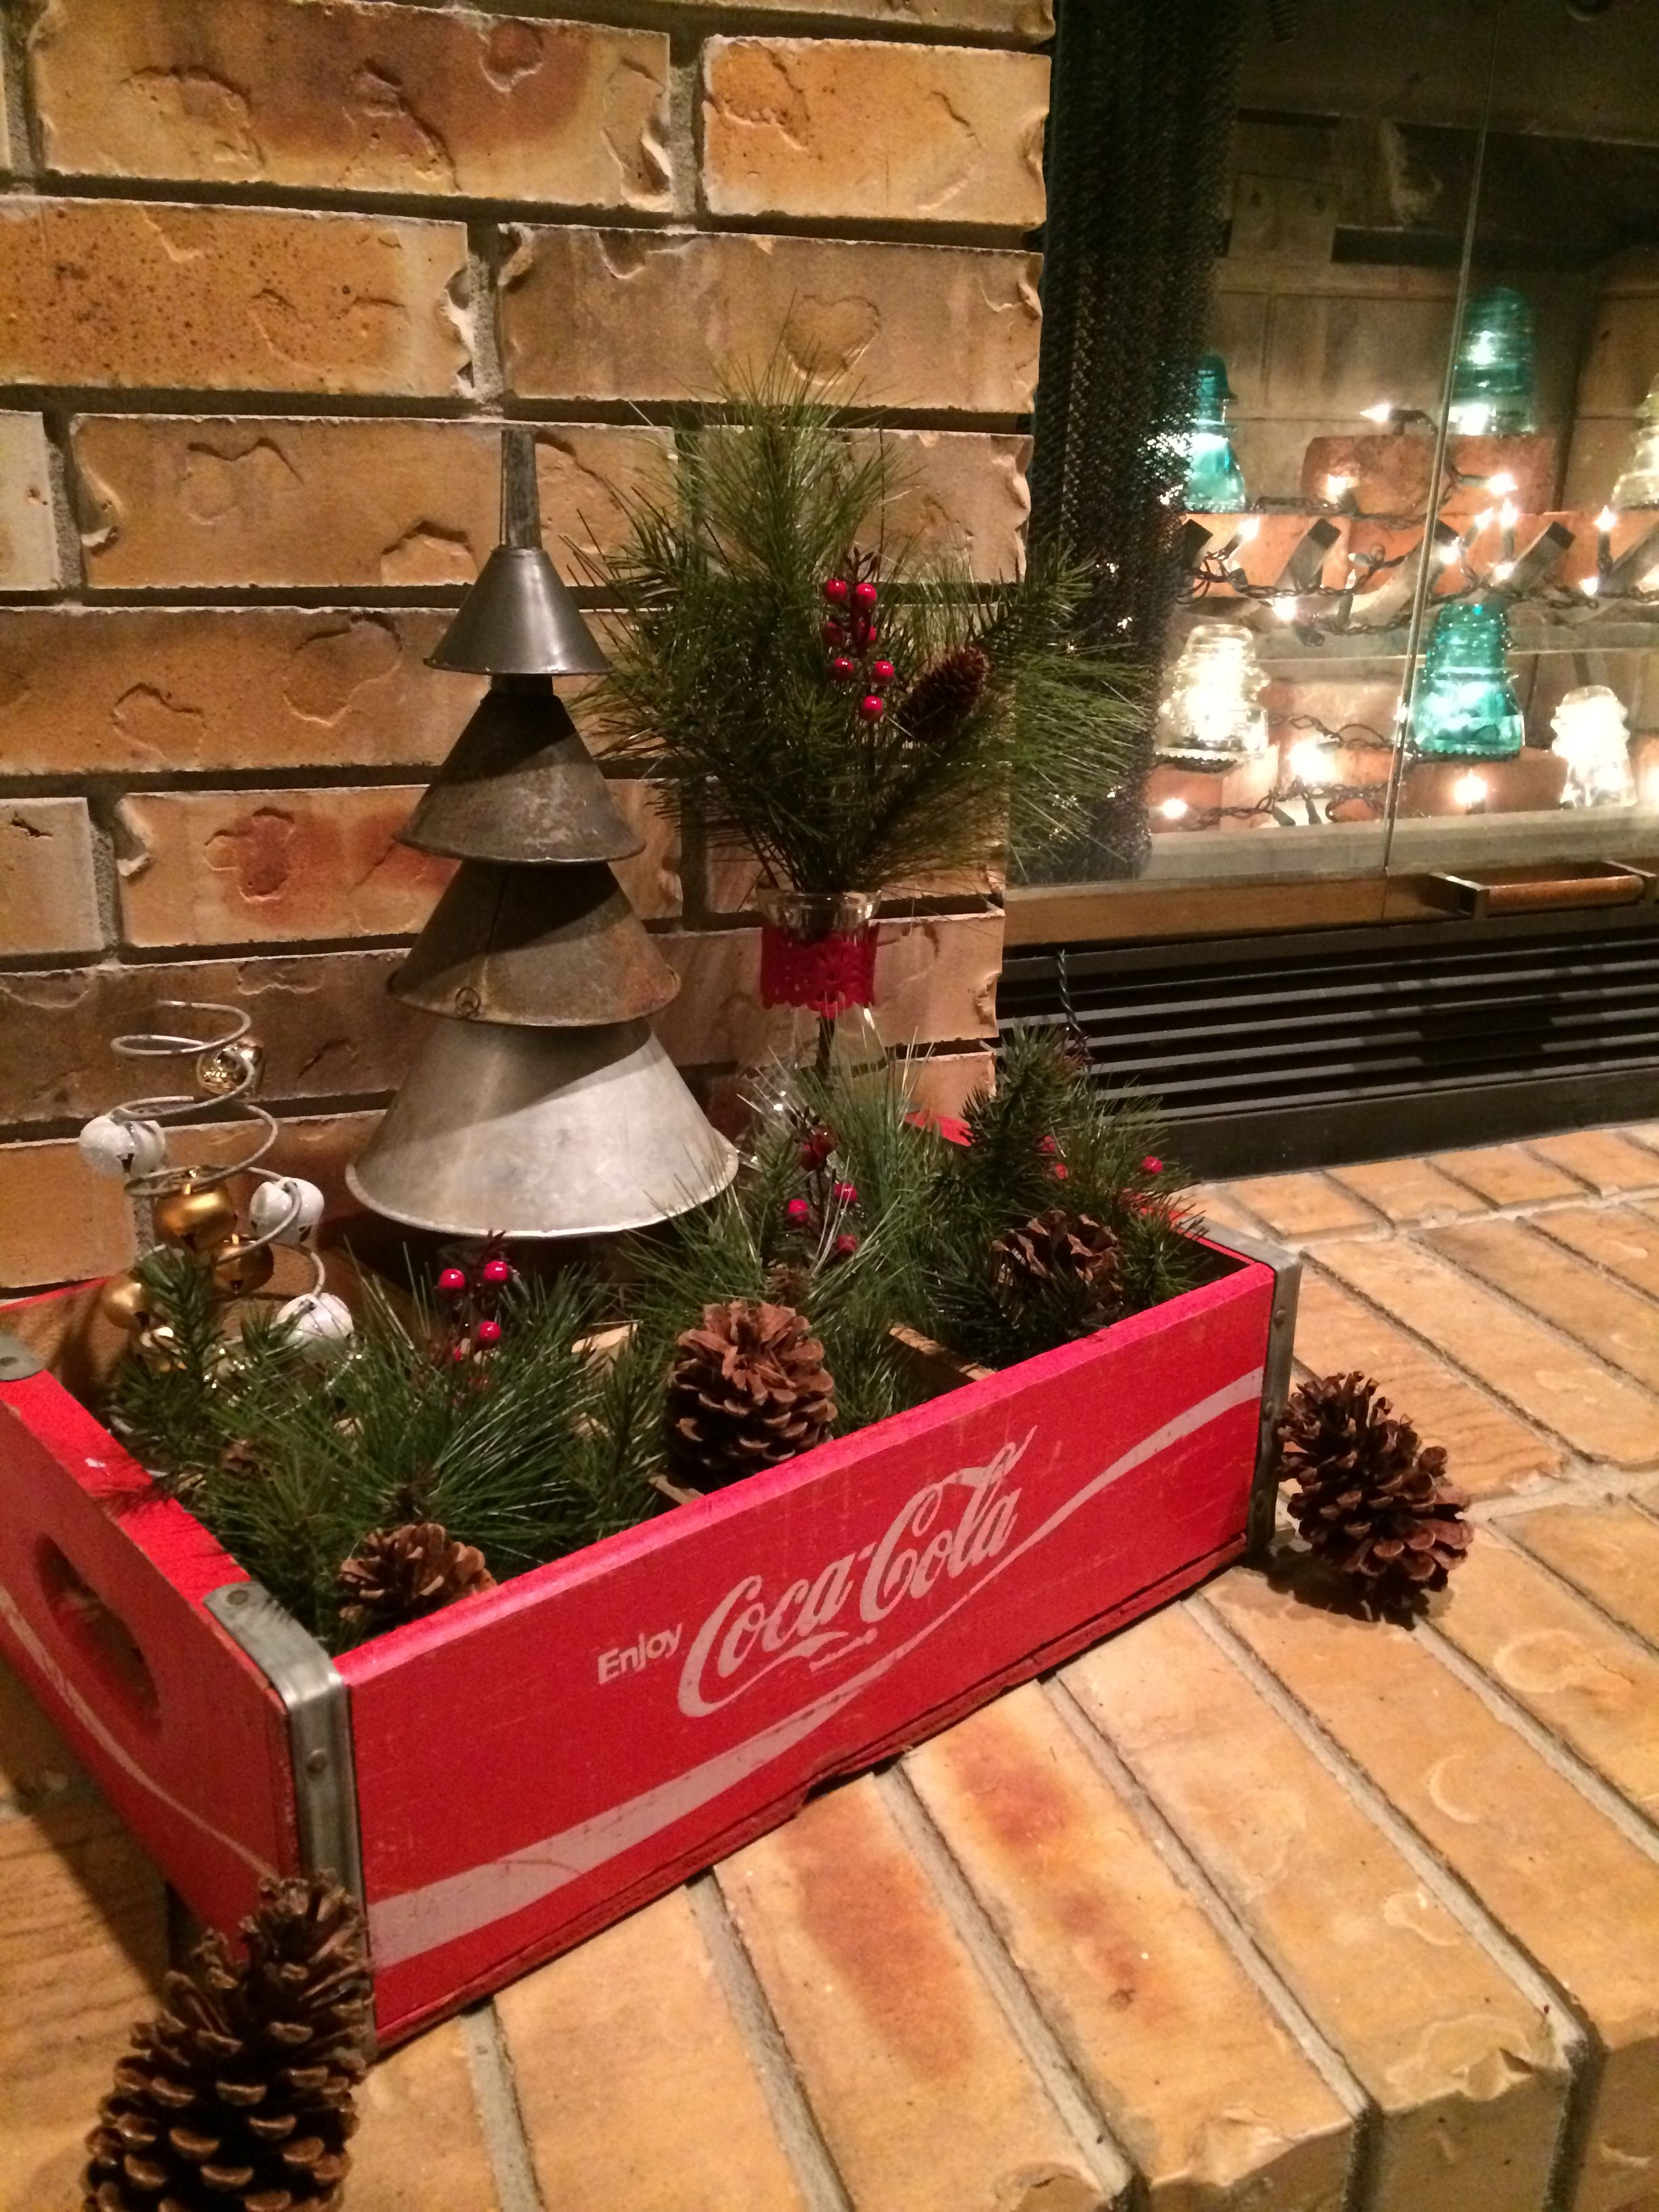 My Old Funnel Christmas Tree Will Be Complete As Soon As I Find The Perfect Start But Christmas Table Centerpieces Christmas Centerpieces Christmas Decor Diy